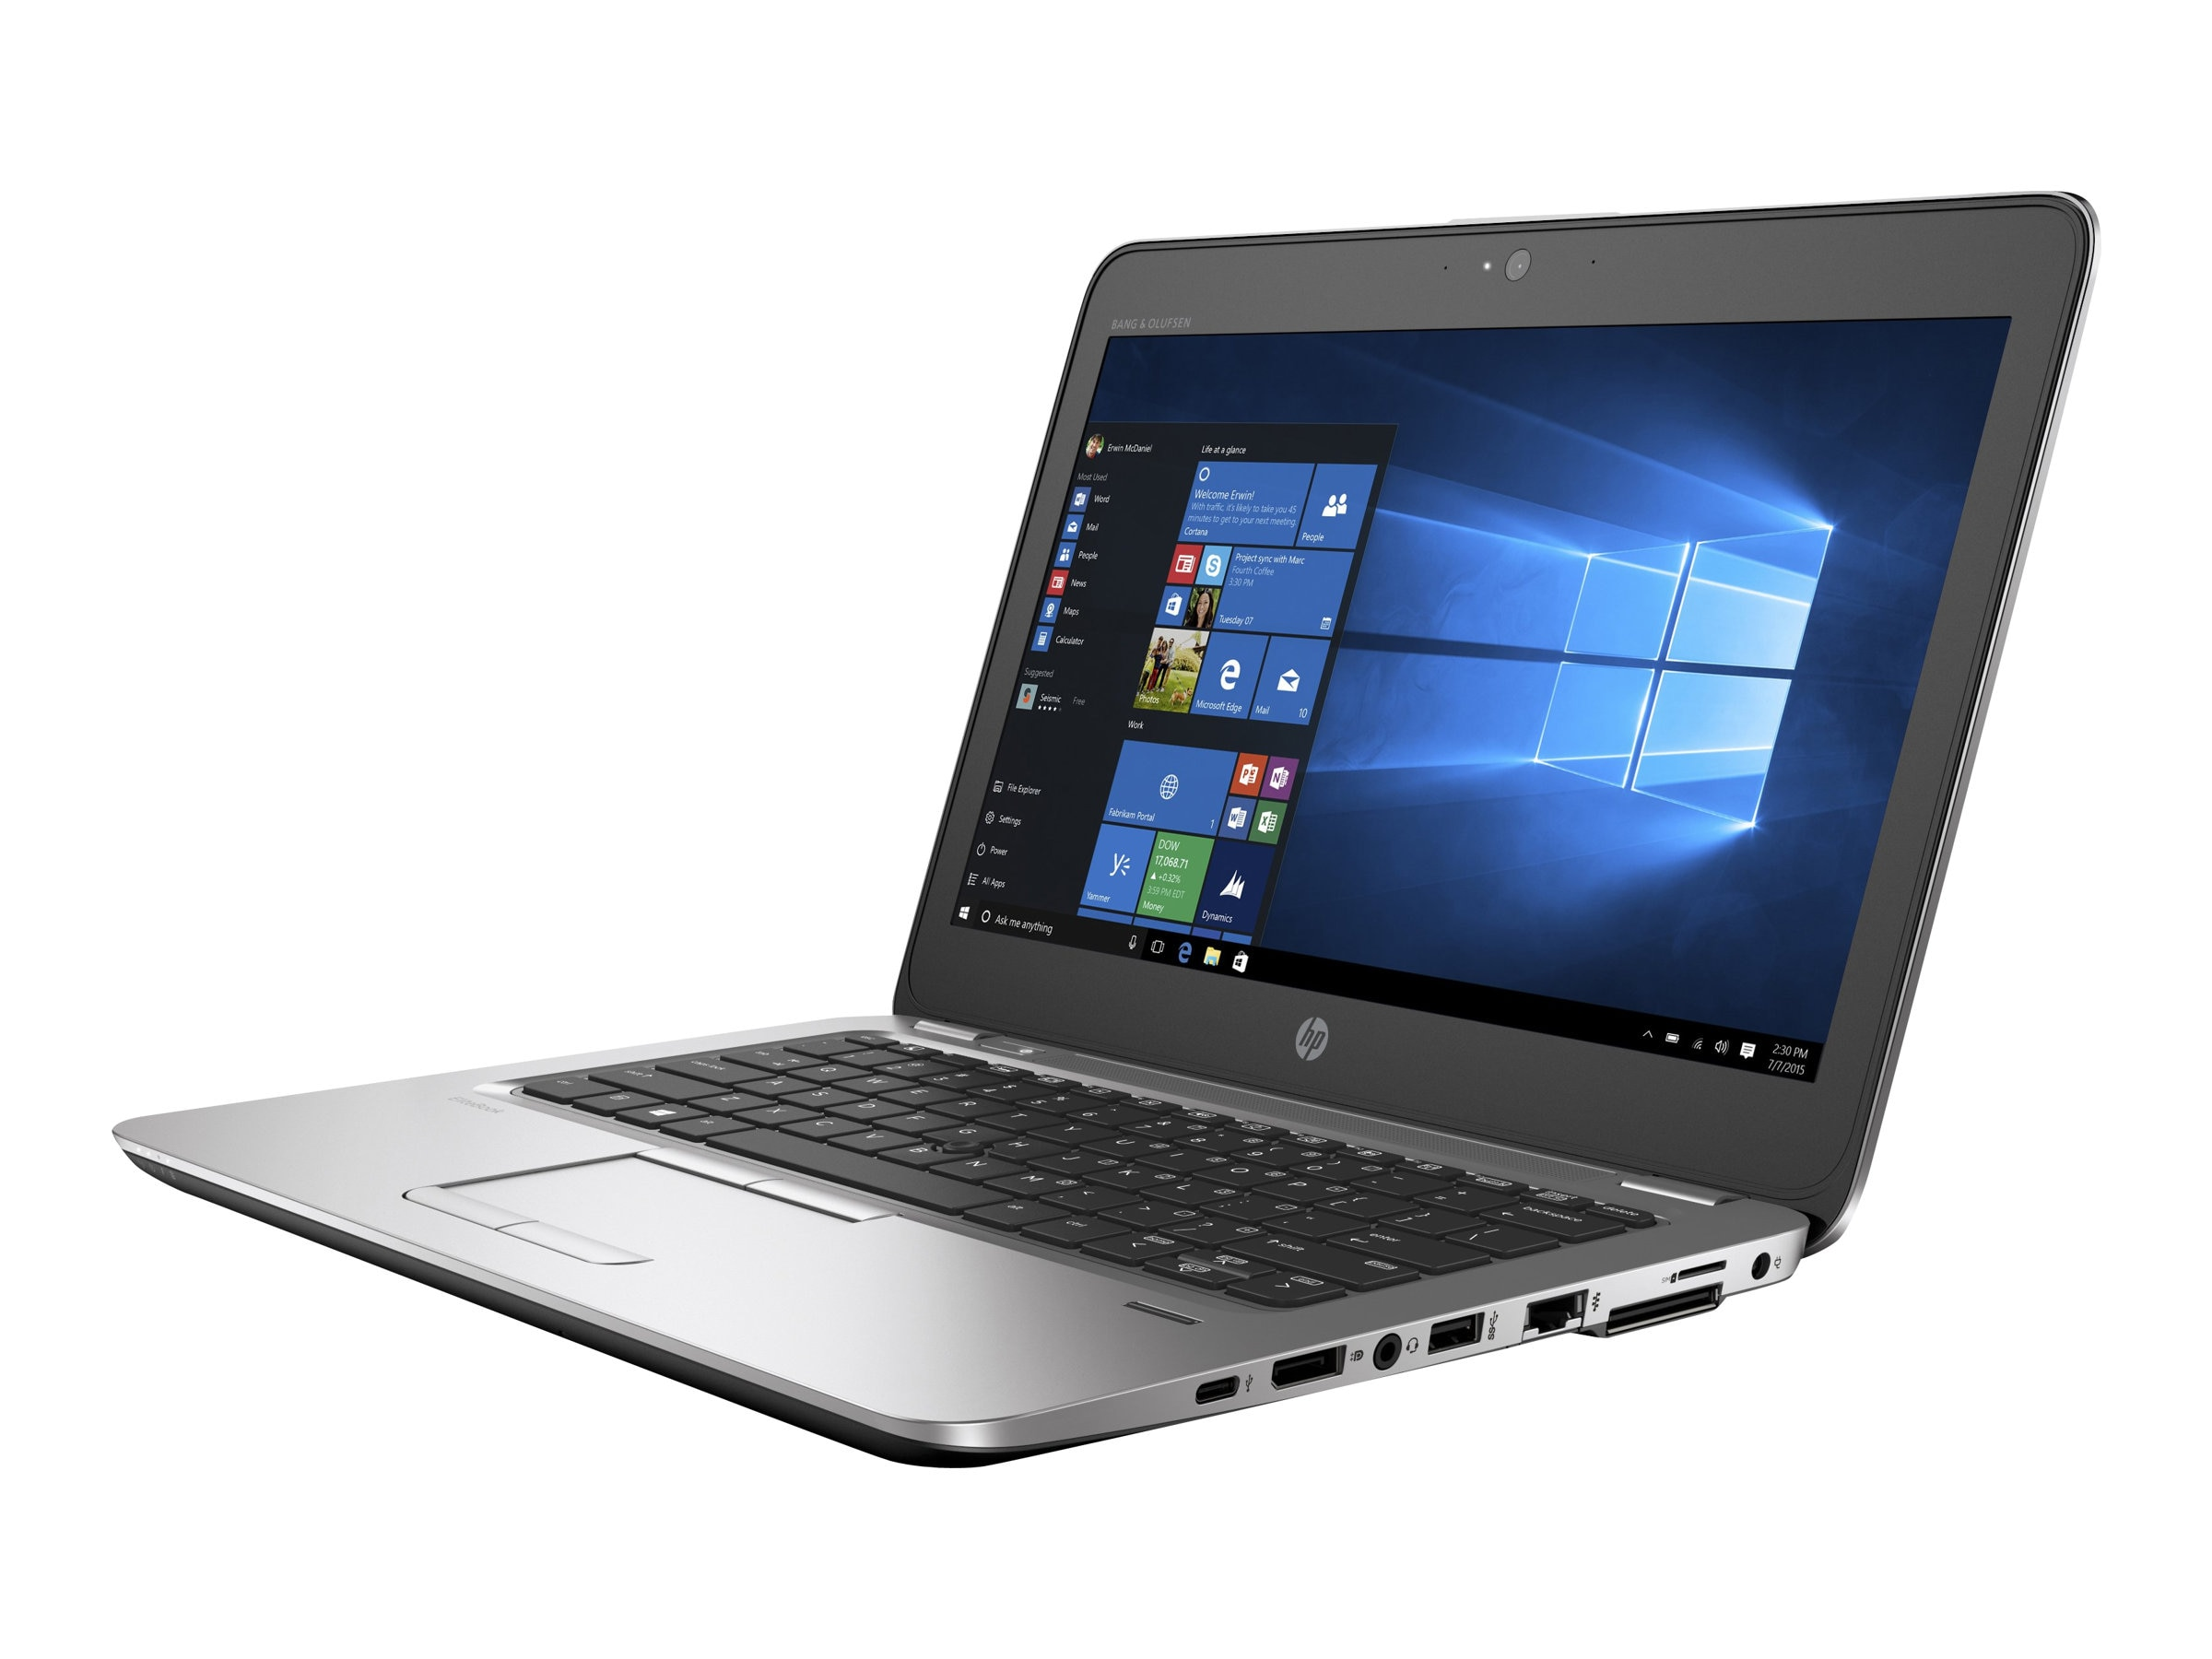 HP EliteBook 820 G3 2.3GHz Core i5 12.5in display